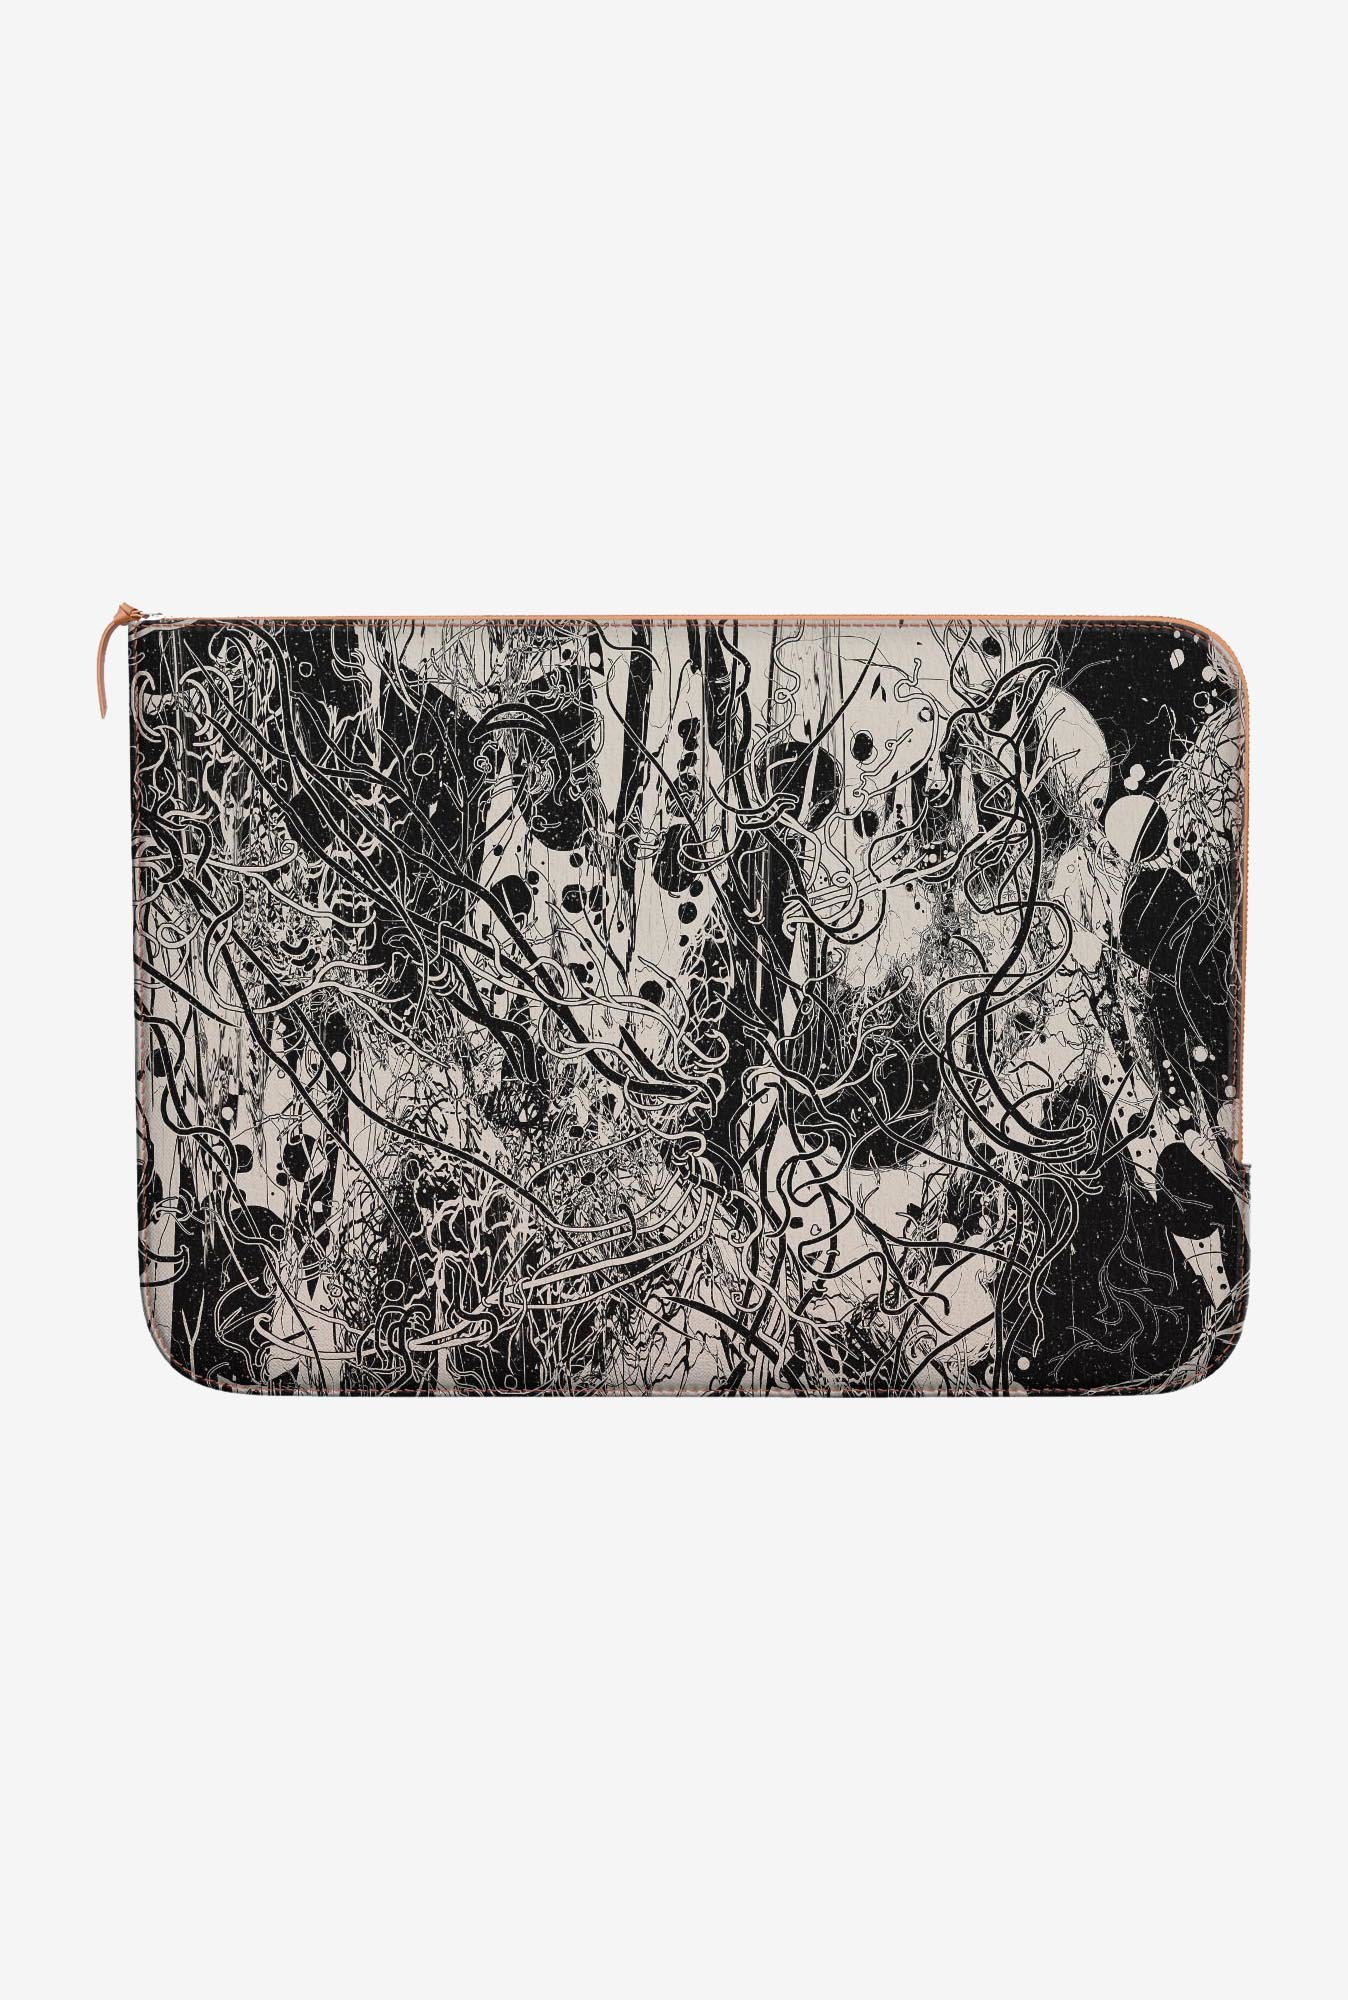 DailyObjects Coexistence MacBook Air 11 Zippered Sleeve